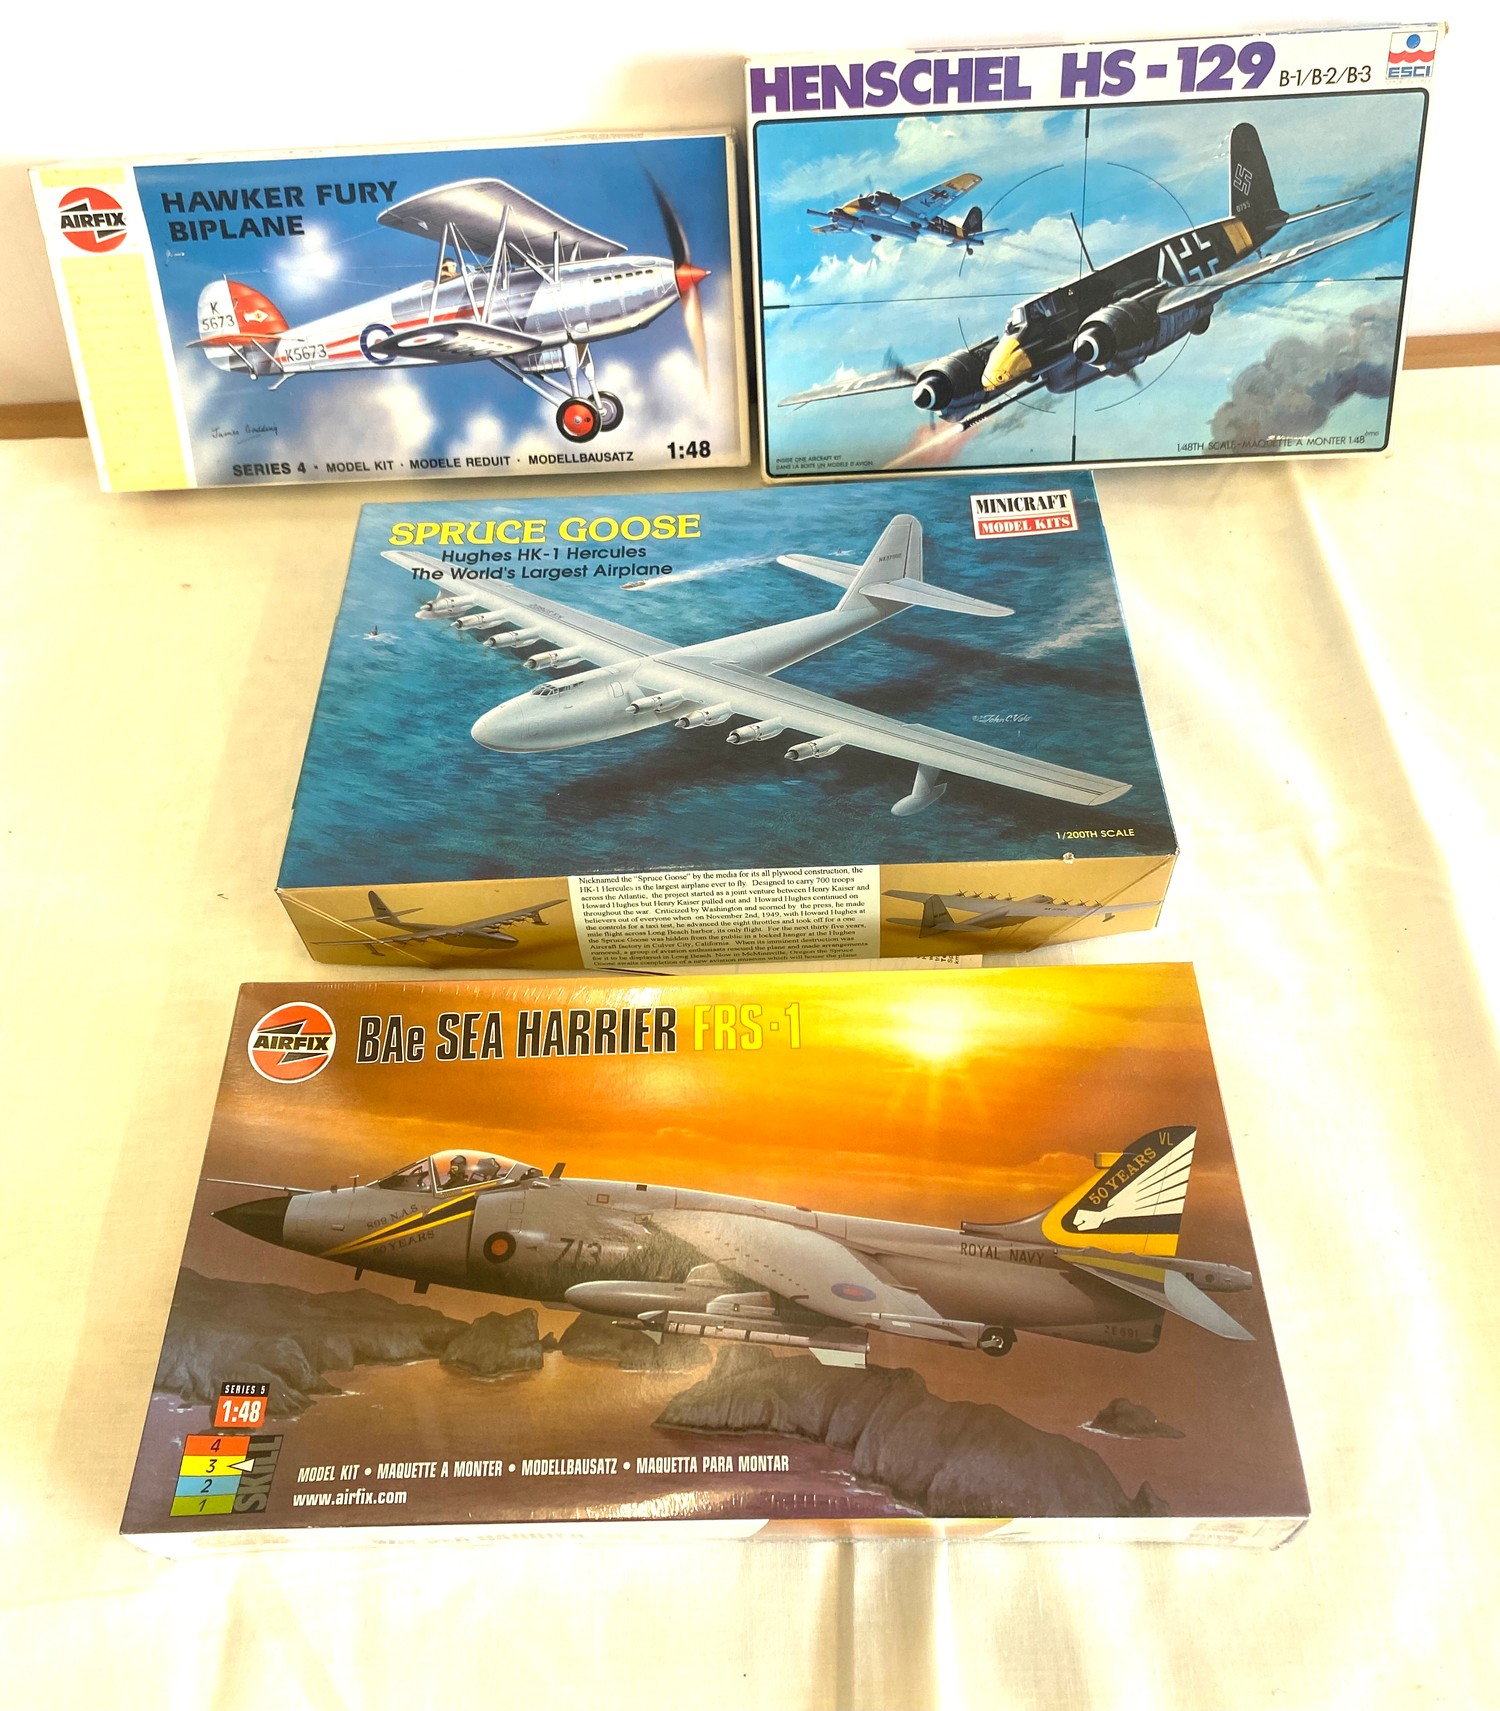 Selection of 4 boxed model air crafts includes, Henschel HS-129, Hawker Fury Biplane, Spruce Goose